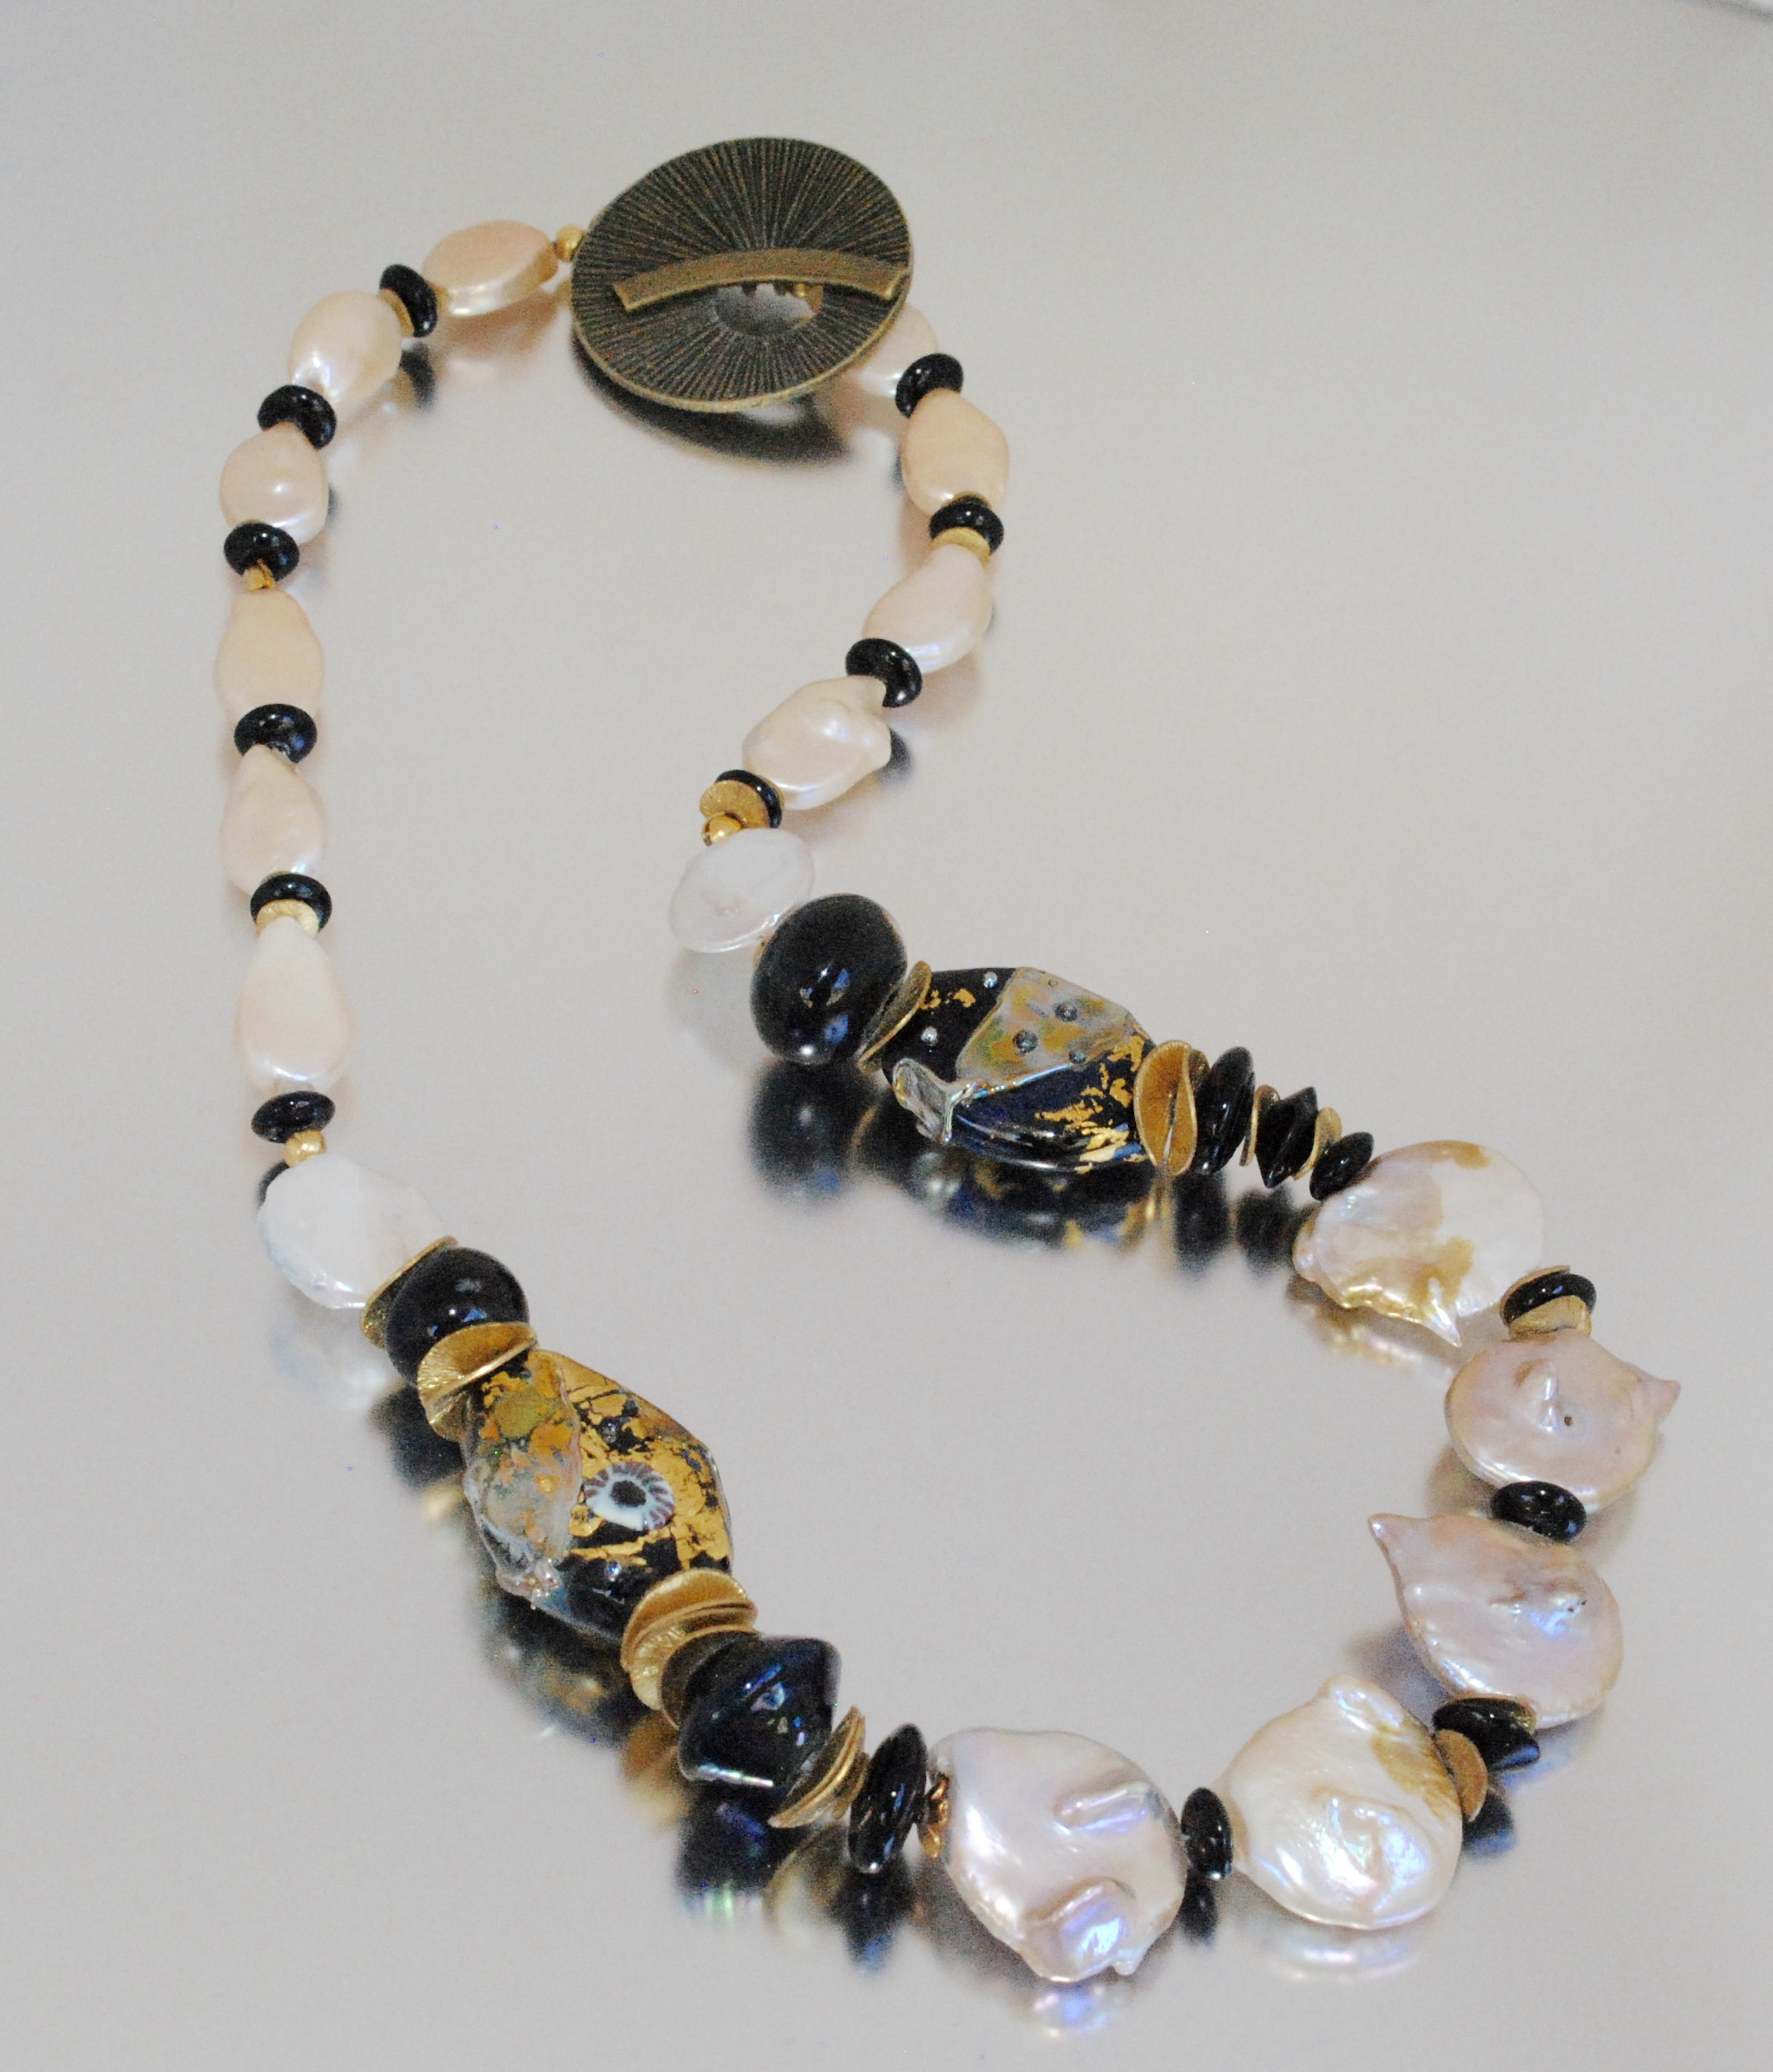 Black and Gold Leaf Handmade Glass Bead Necklace with Baroque Pearls